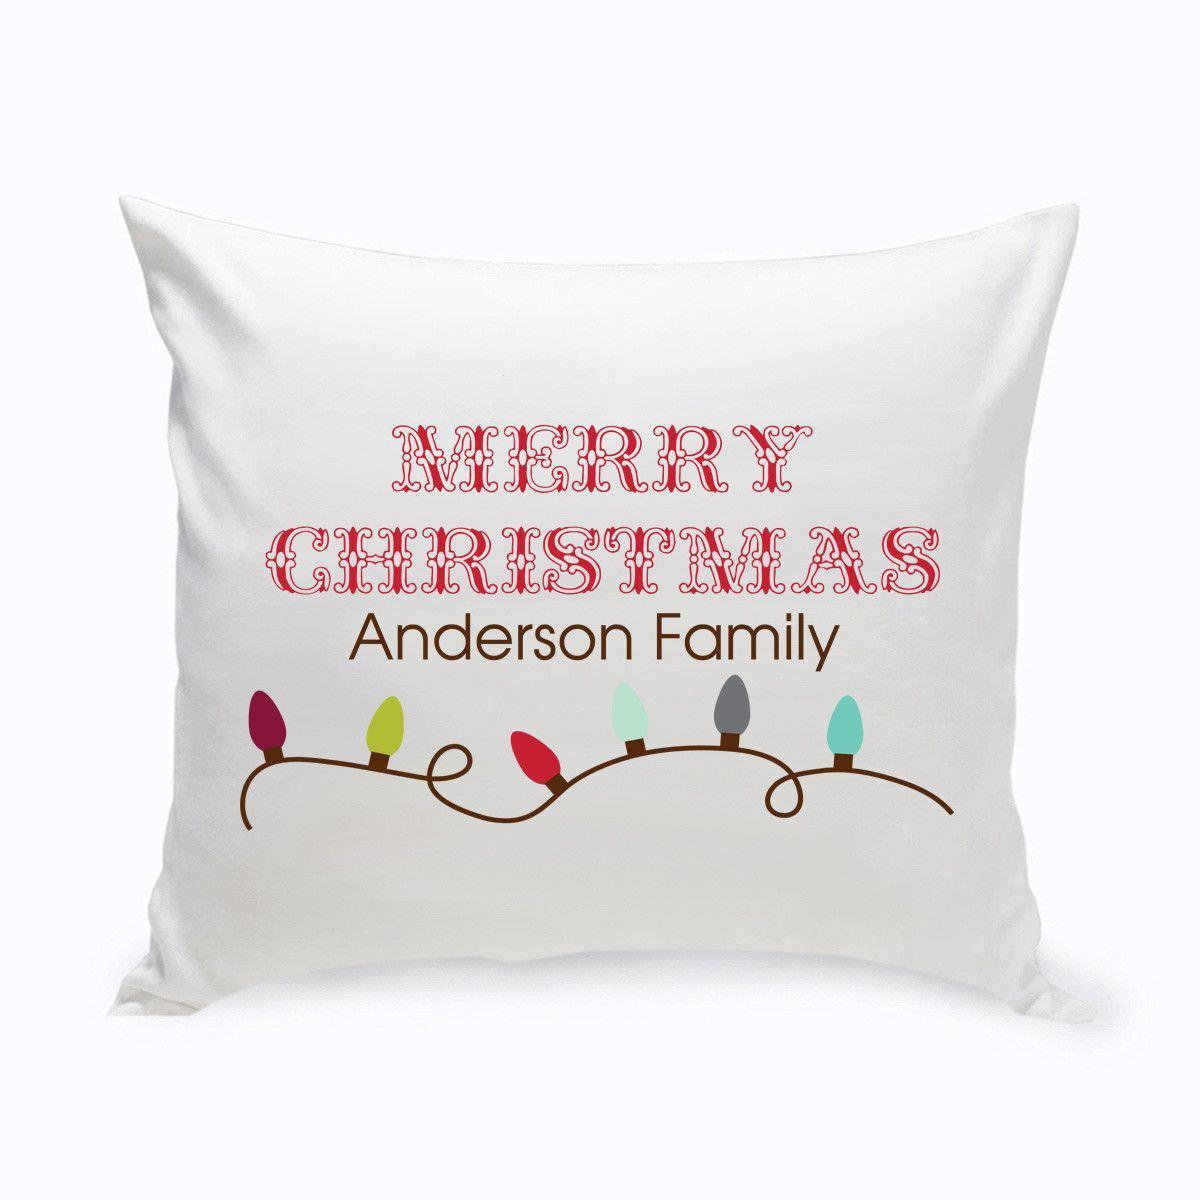 Personalized-Holiday-Throw-Pillows-Xmas-Lights